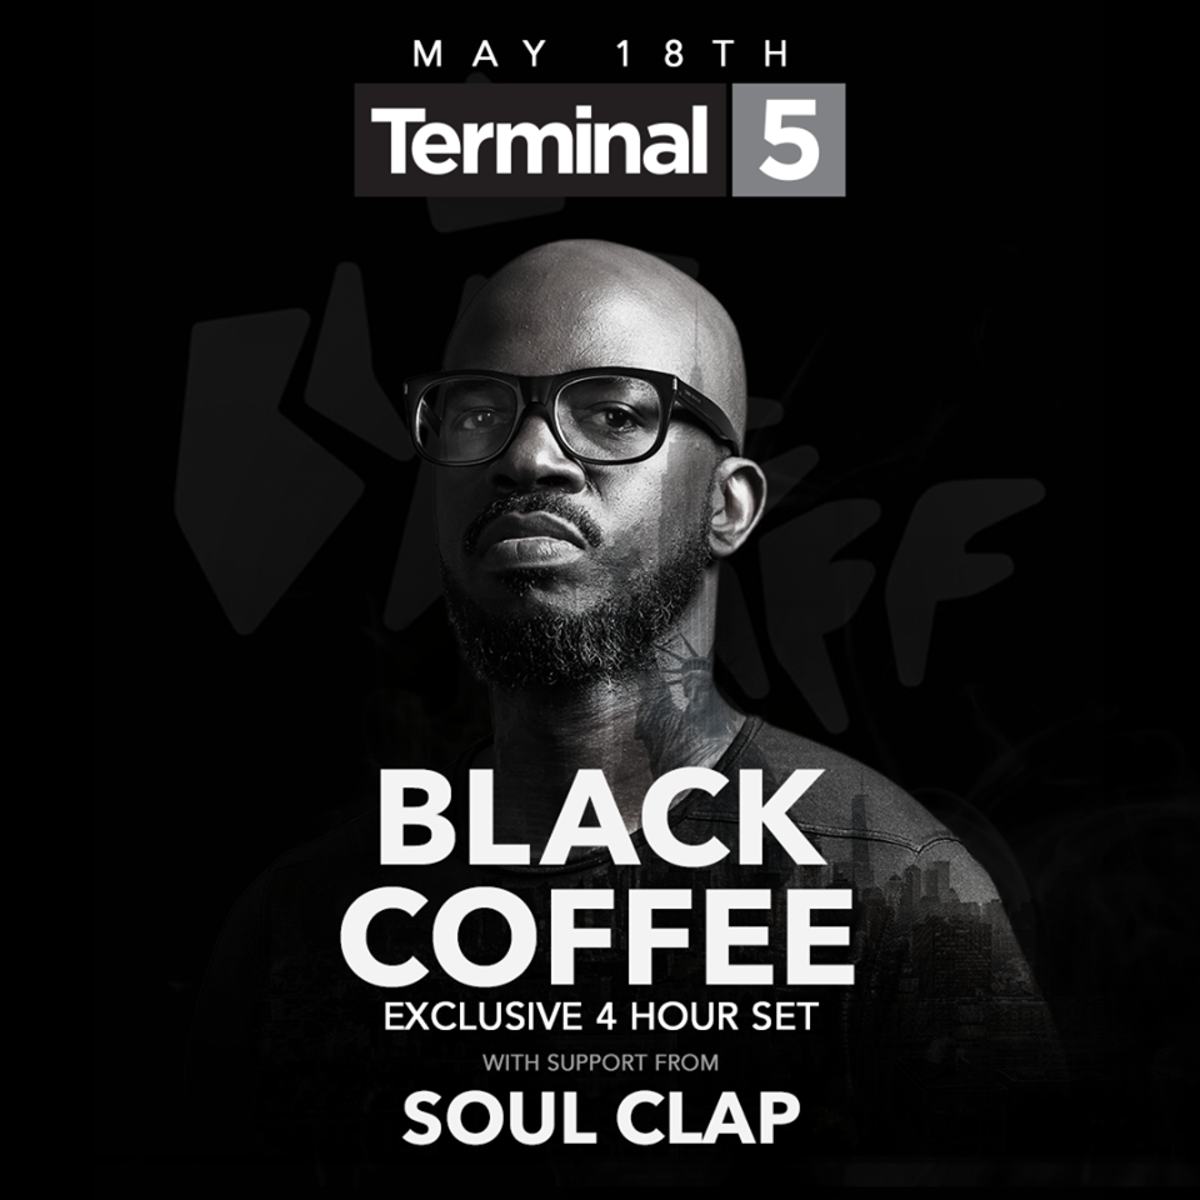 Black Coffee Terminal 5 NYC - May 18 2018 Show